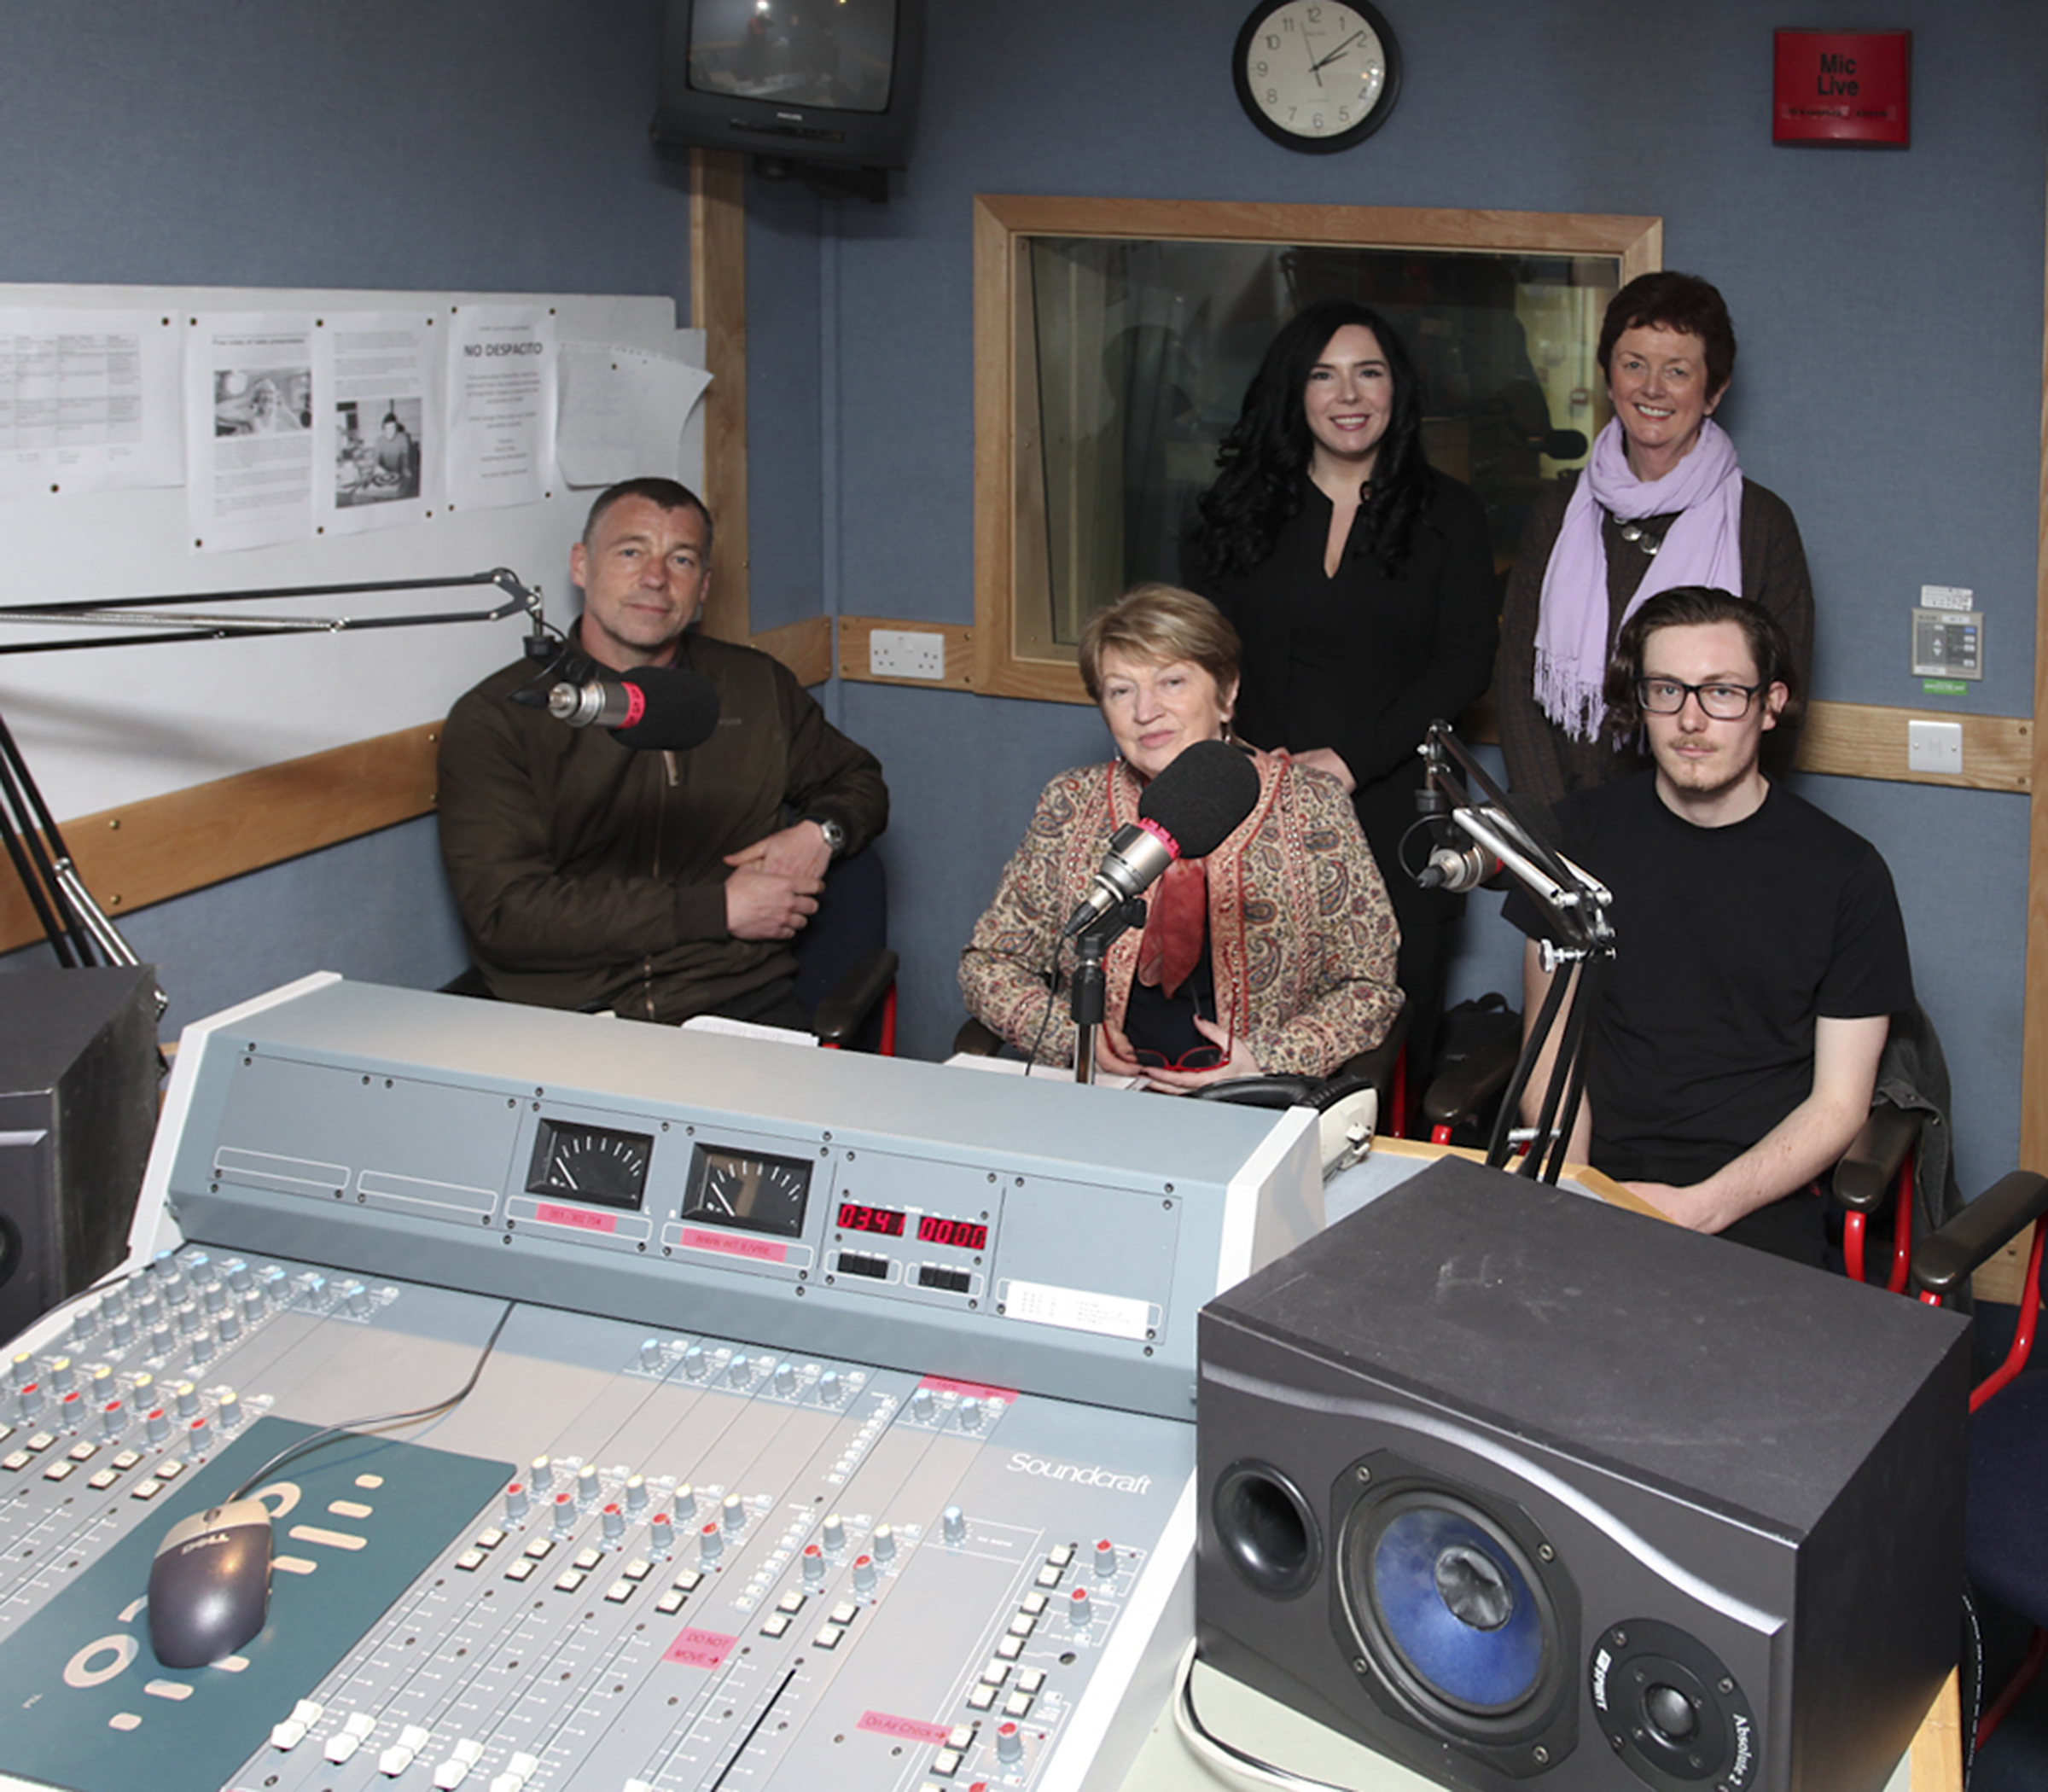 Pictured left to right: students (seated): Michael Power, Mary McCarthy, George Morgan-Busher. Lecturers (standing): Fiona Ennis, Margaret O'Brien